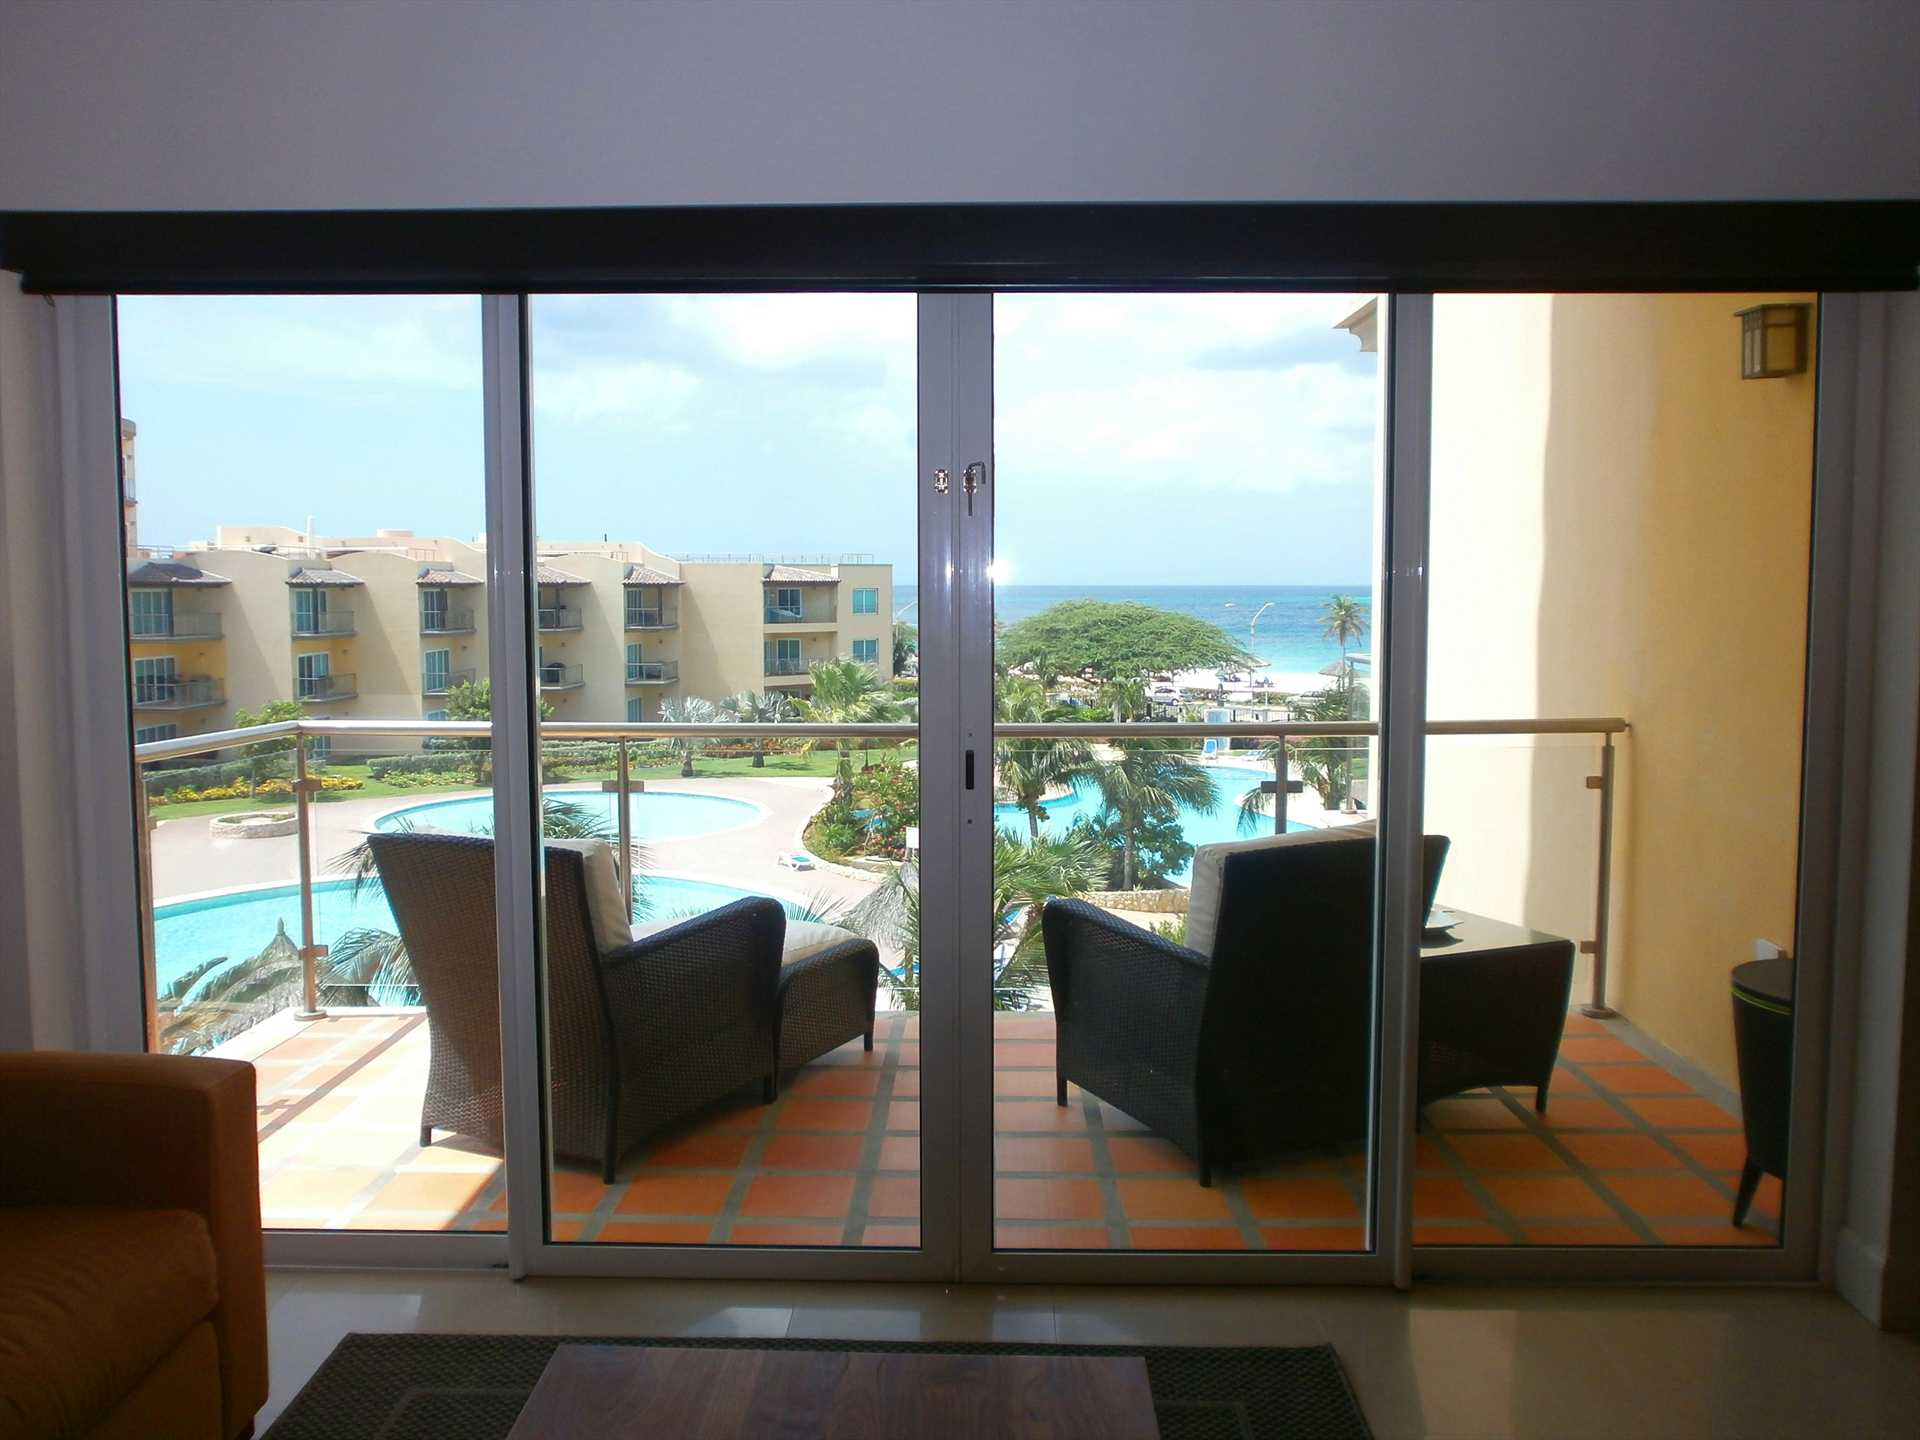 Easy access to balcony from the living room